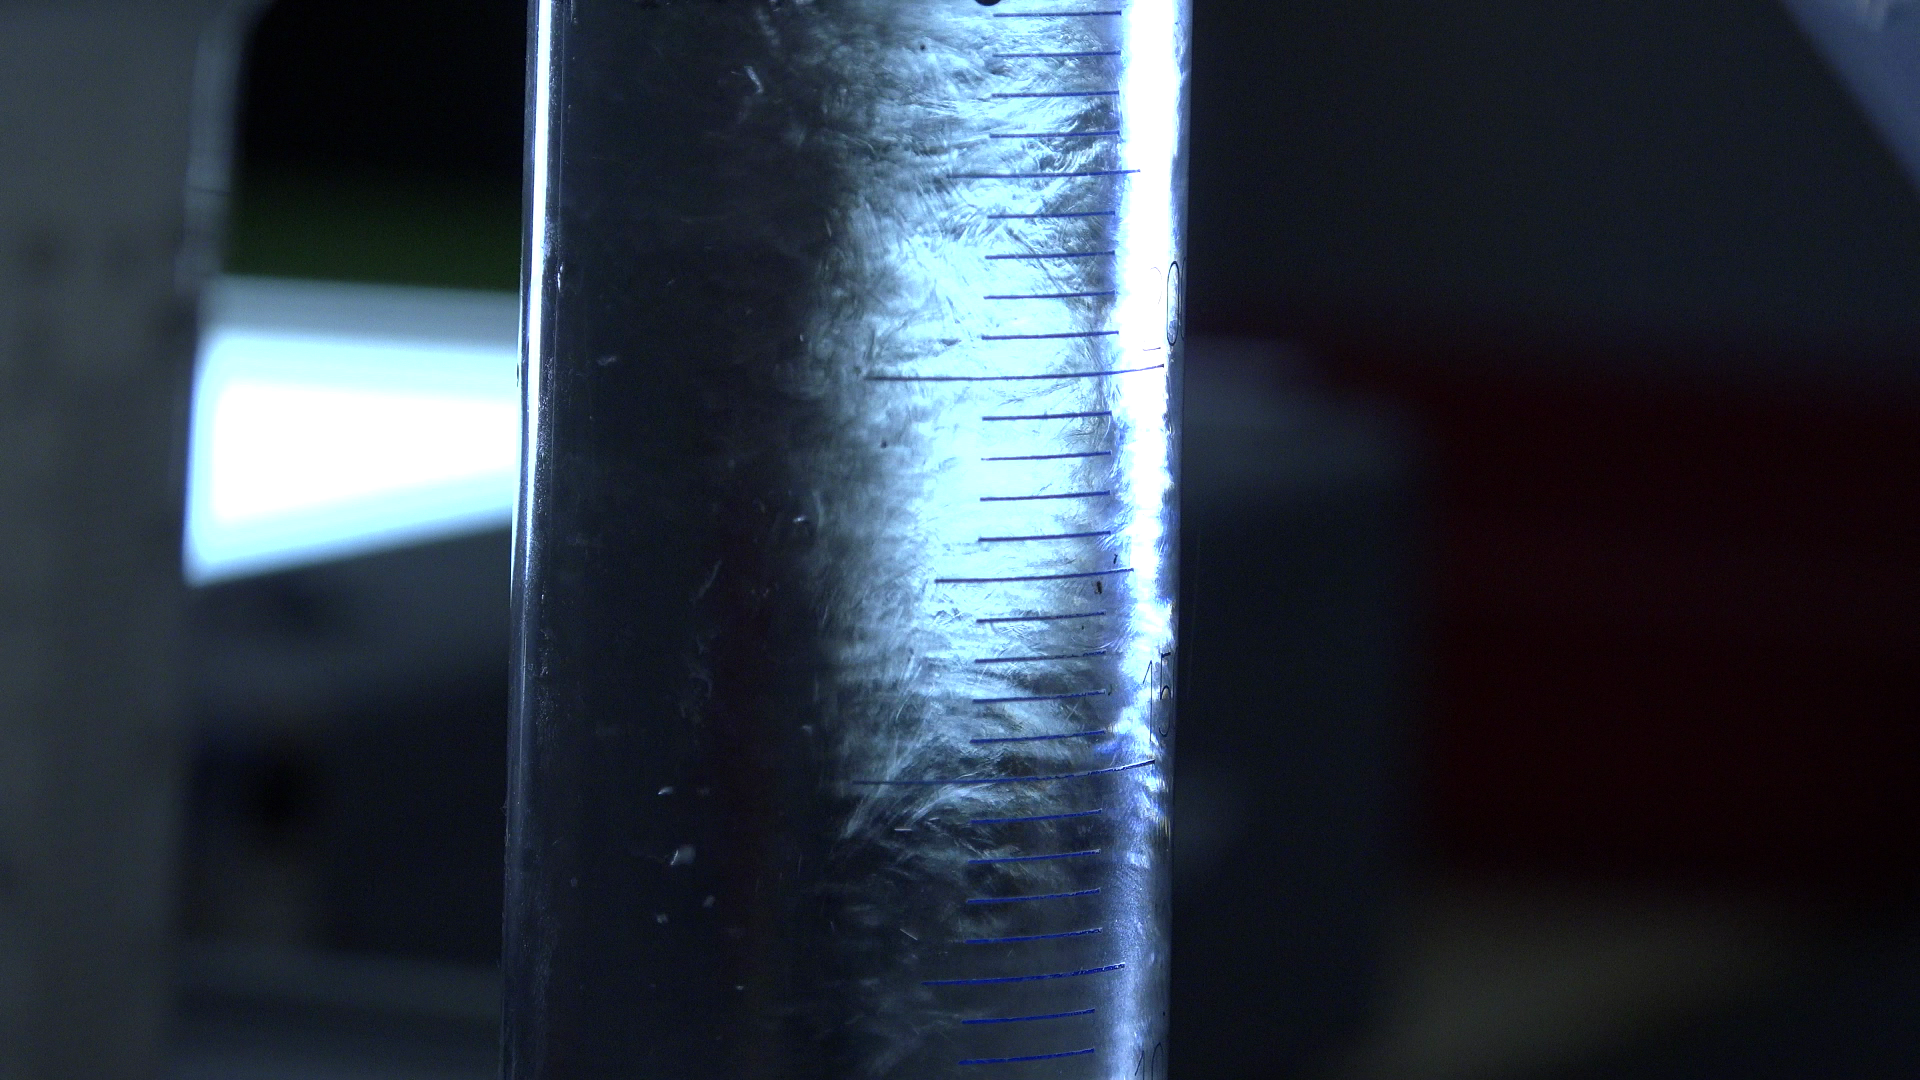 Still from the film Een Donker Uitzicht. It's a extreme close-up of a vial with developing liquid, used to develop film. It looks dreamy, almost magical.